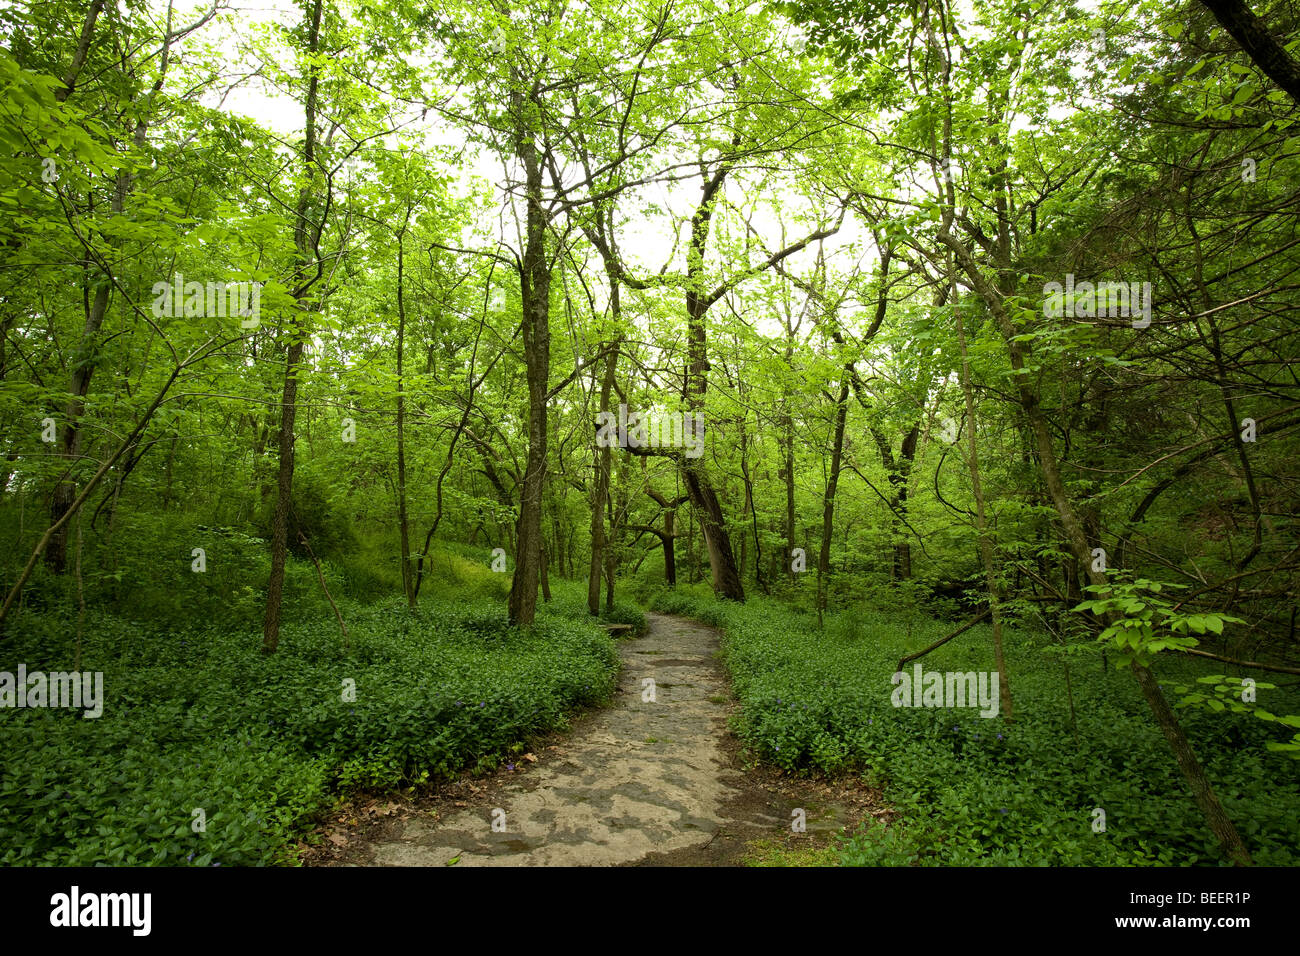 A view of a natural stone pathway at the Tanyard Creek Walking Trail in Bella Vista, Ark. Stock Photo